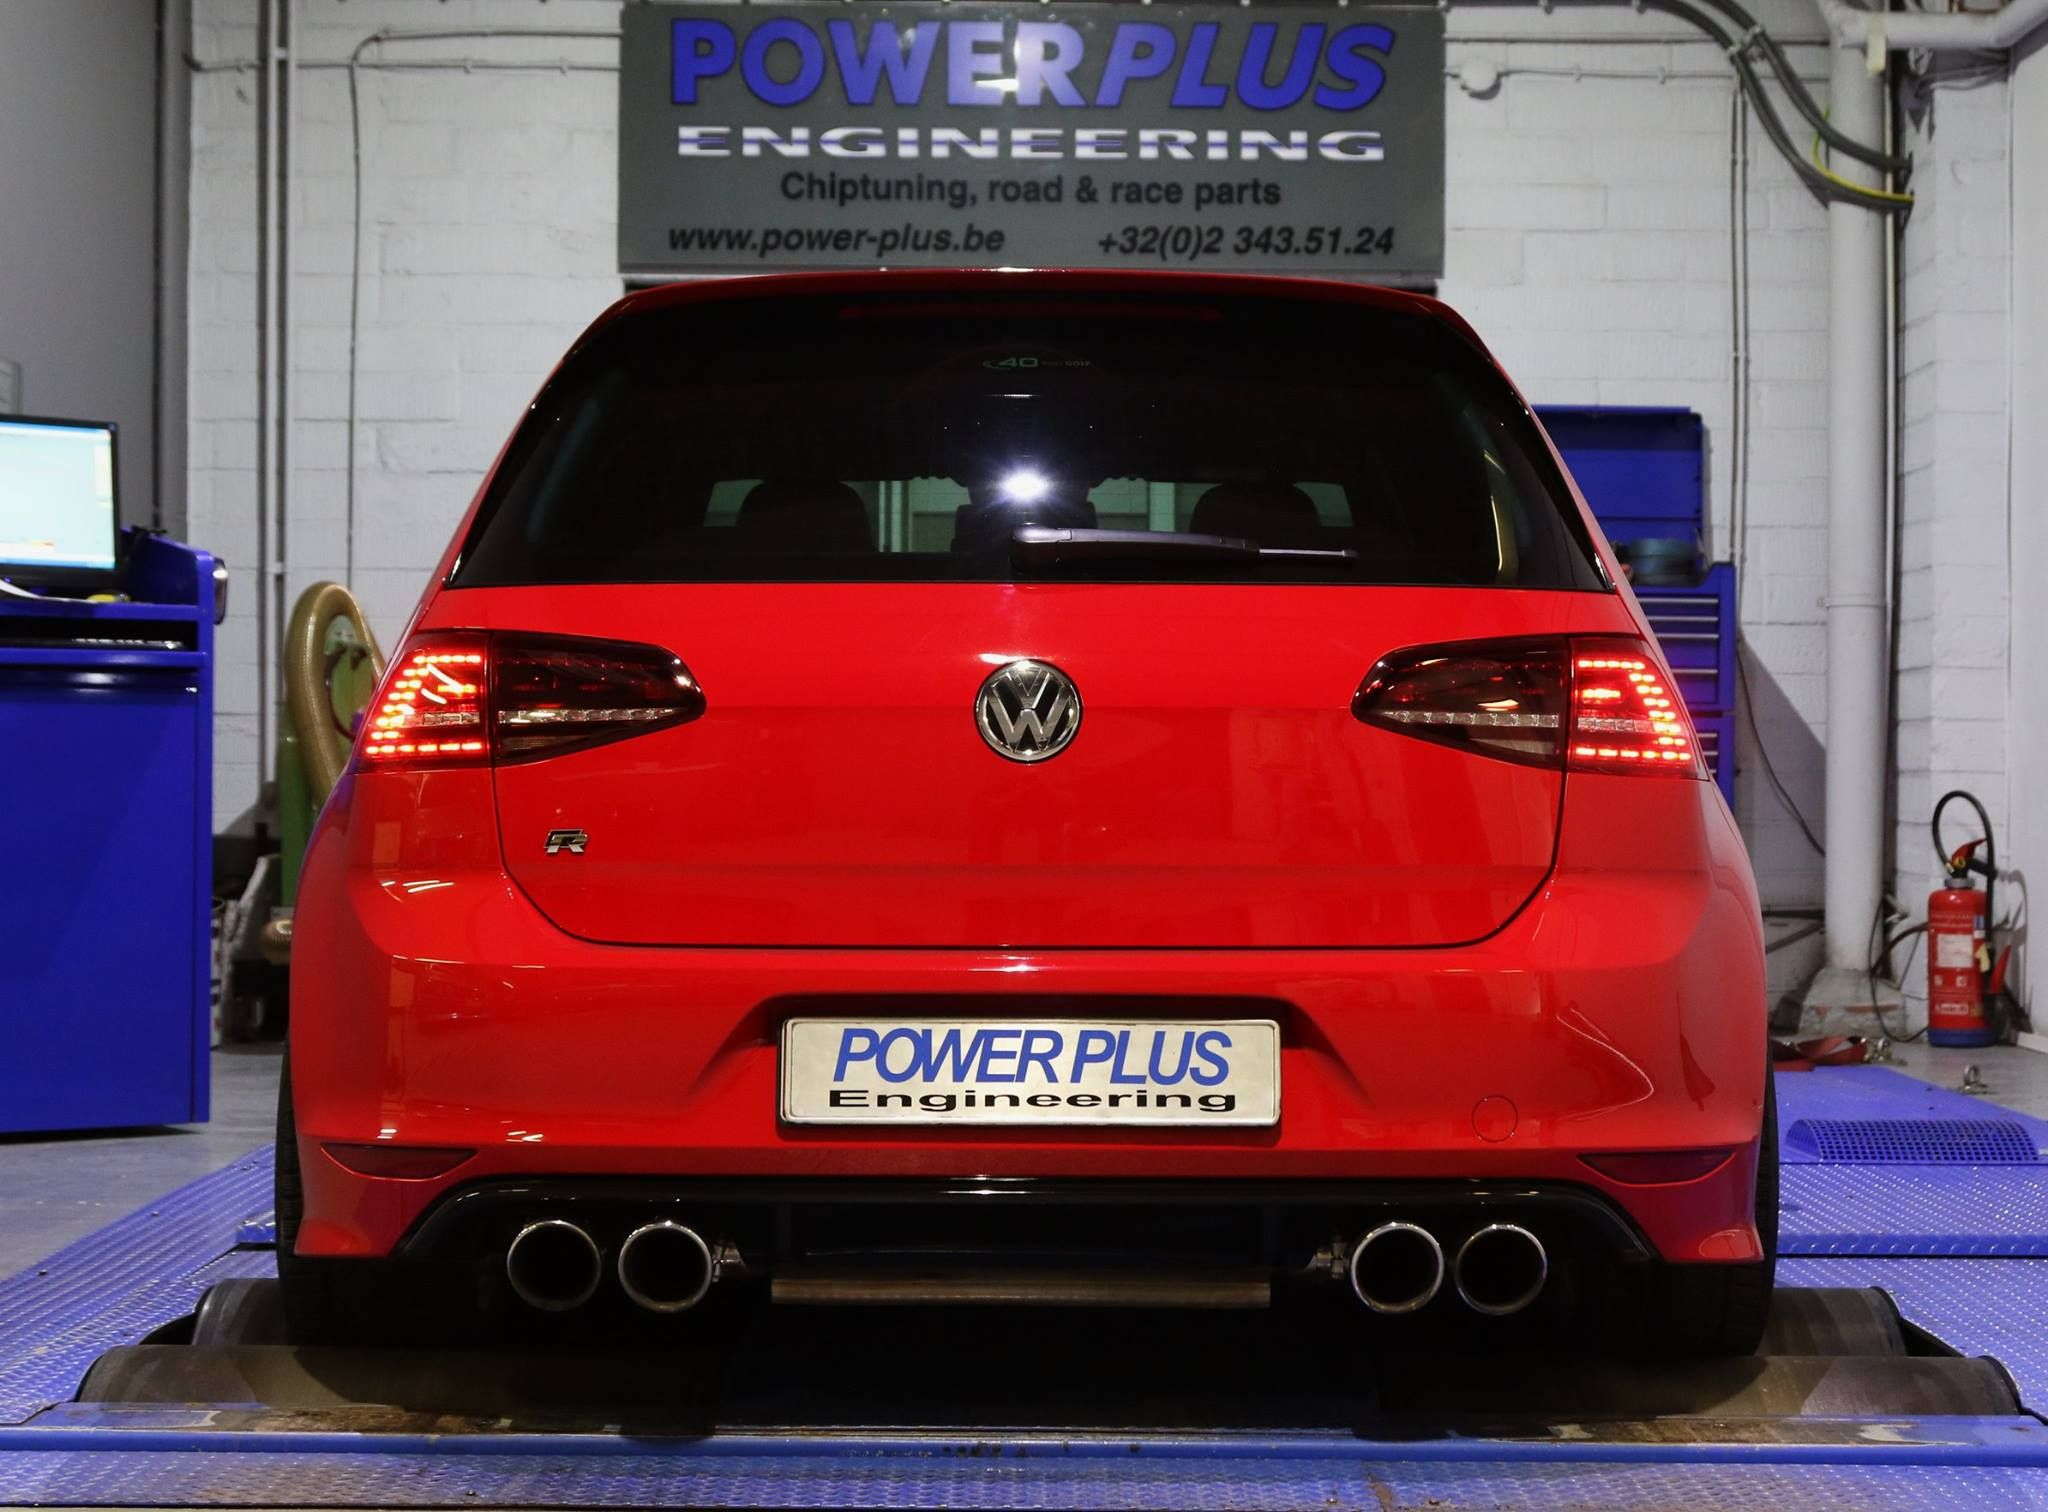 Vw golf 7 r 300 hp tuned with speed buster digital module and specific ppe mapping